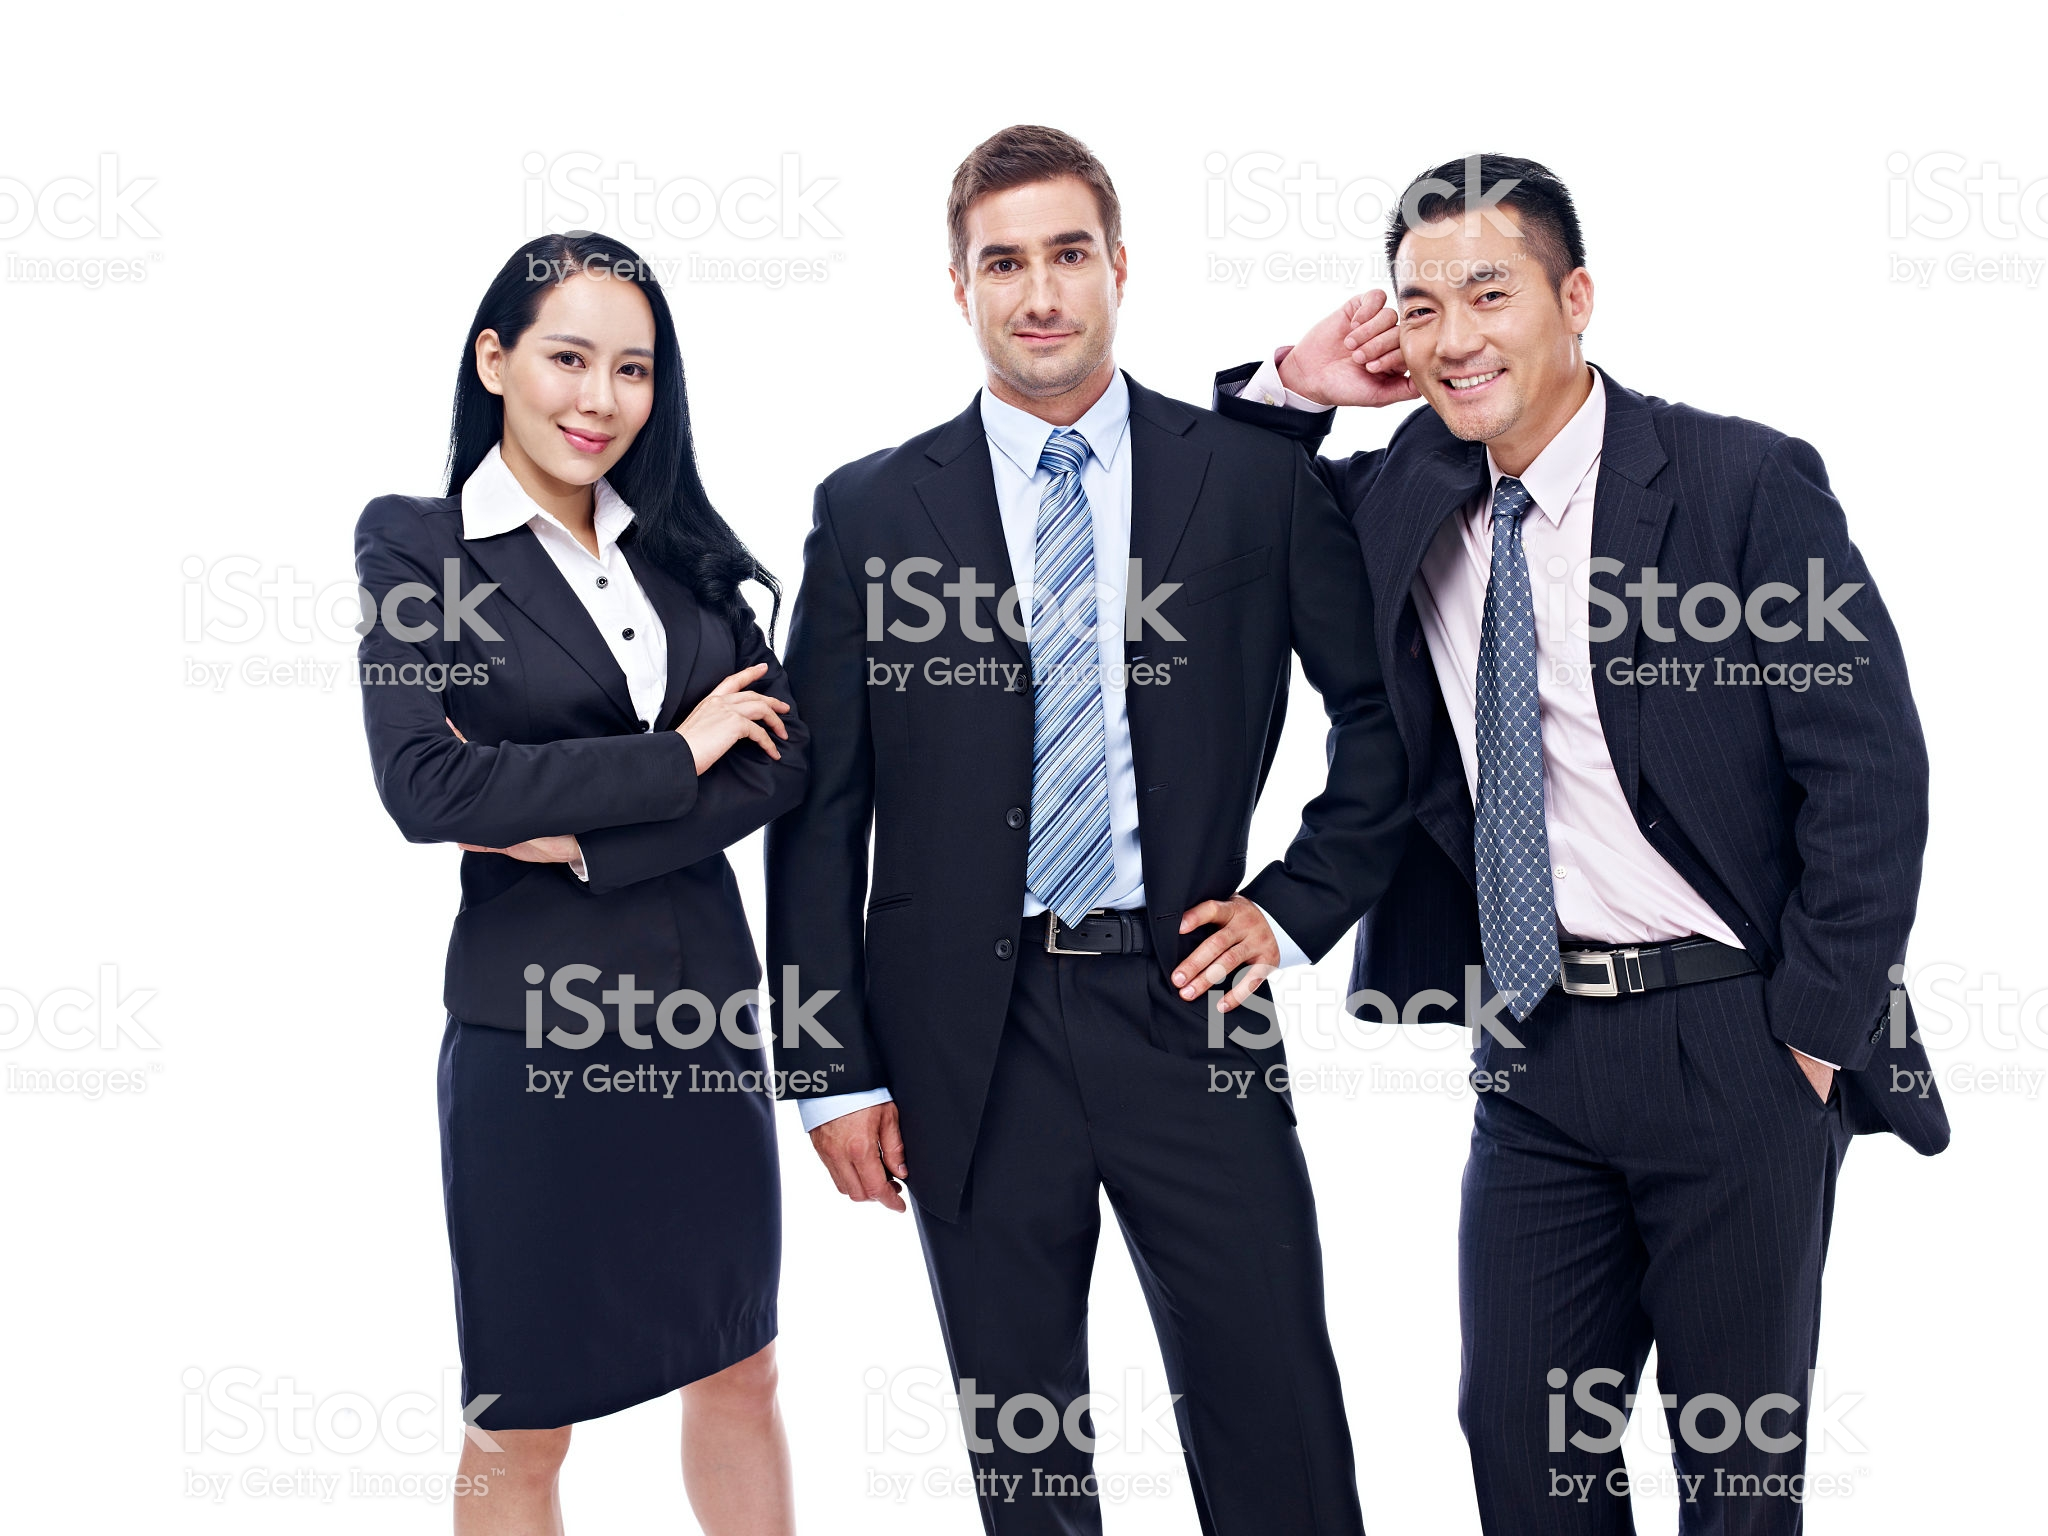 Dress For Interview - istockphoto.com